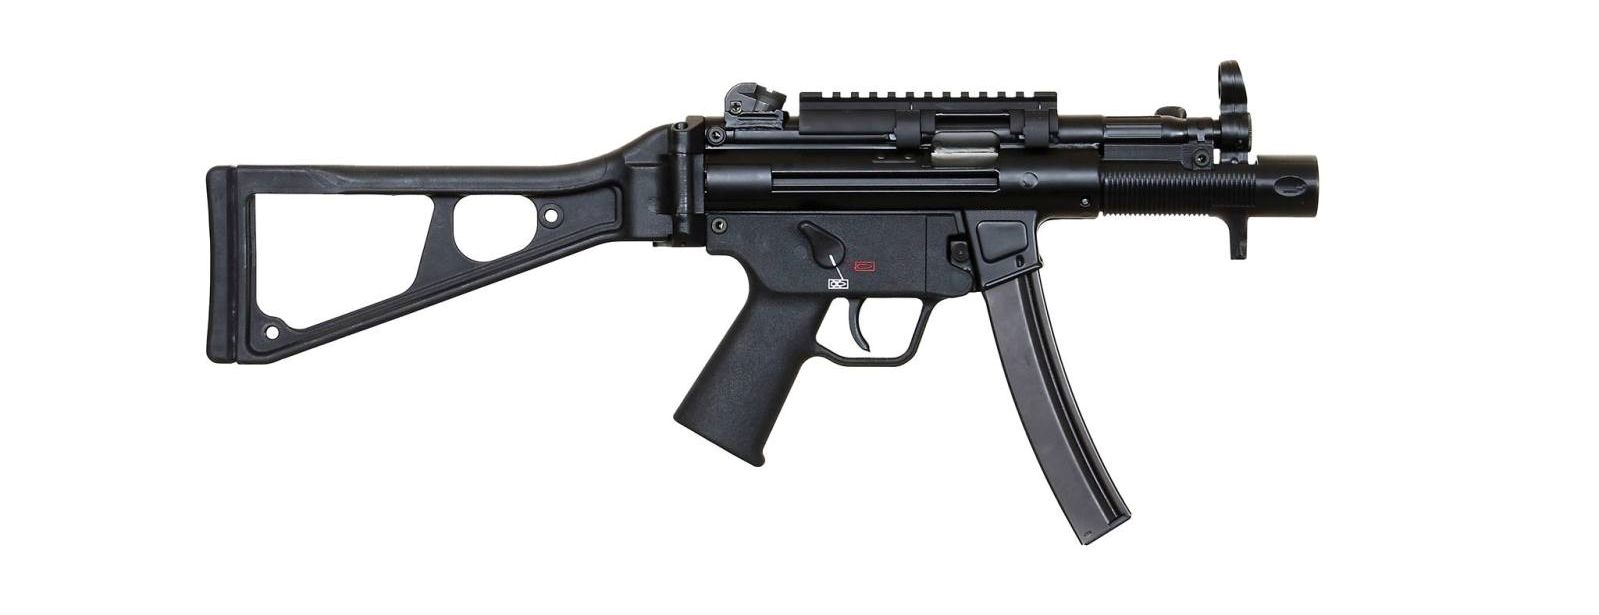 HK SP5K / MP5  calibre 9 Para